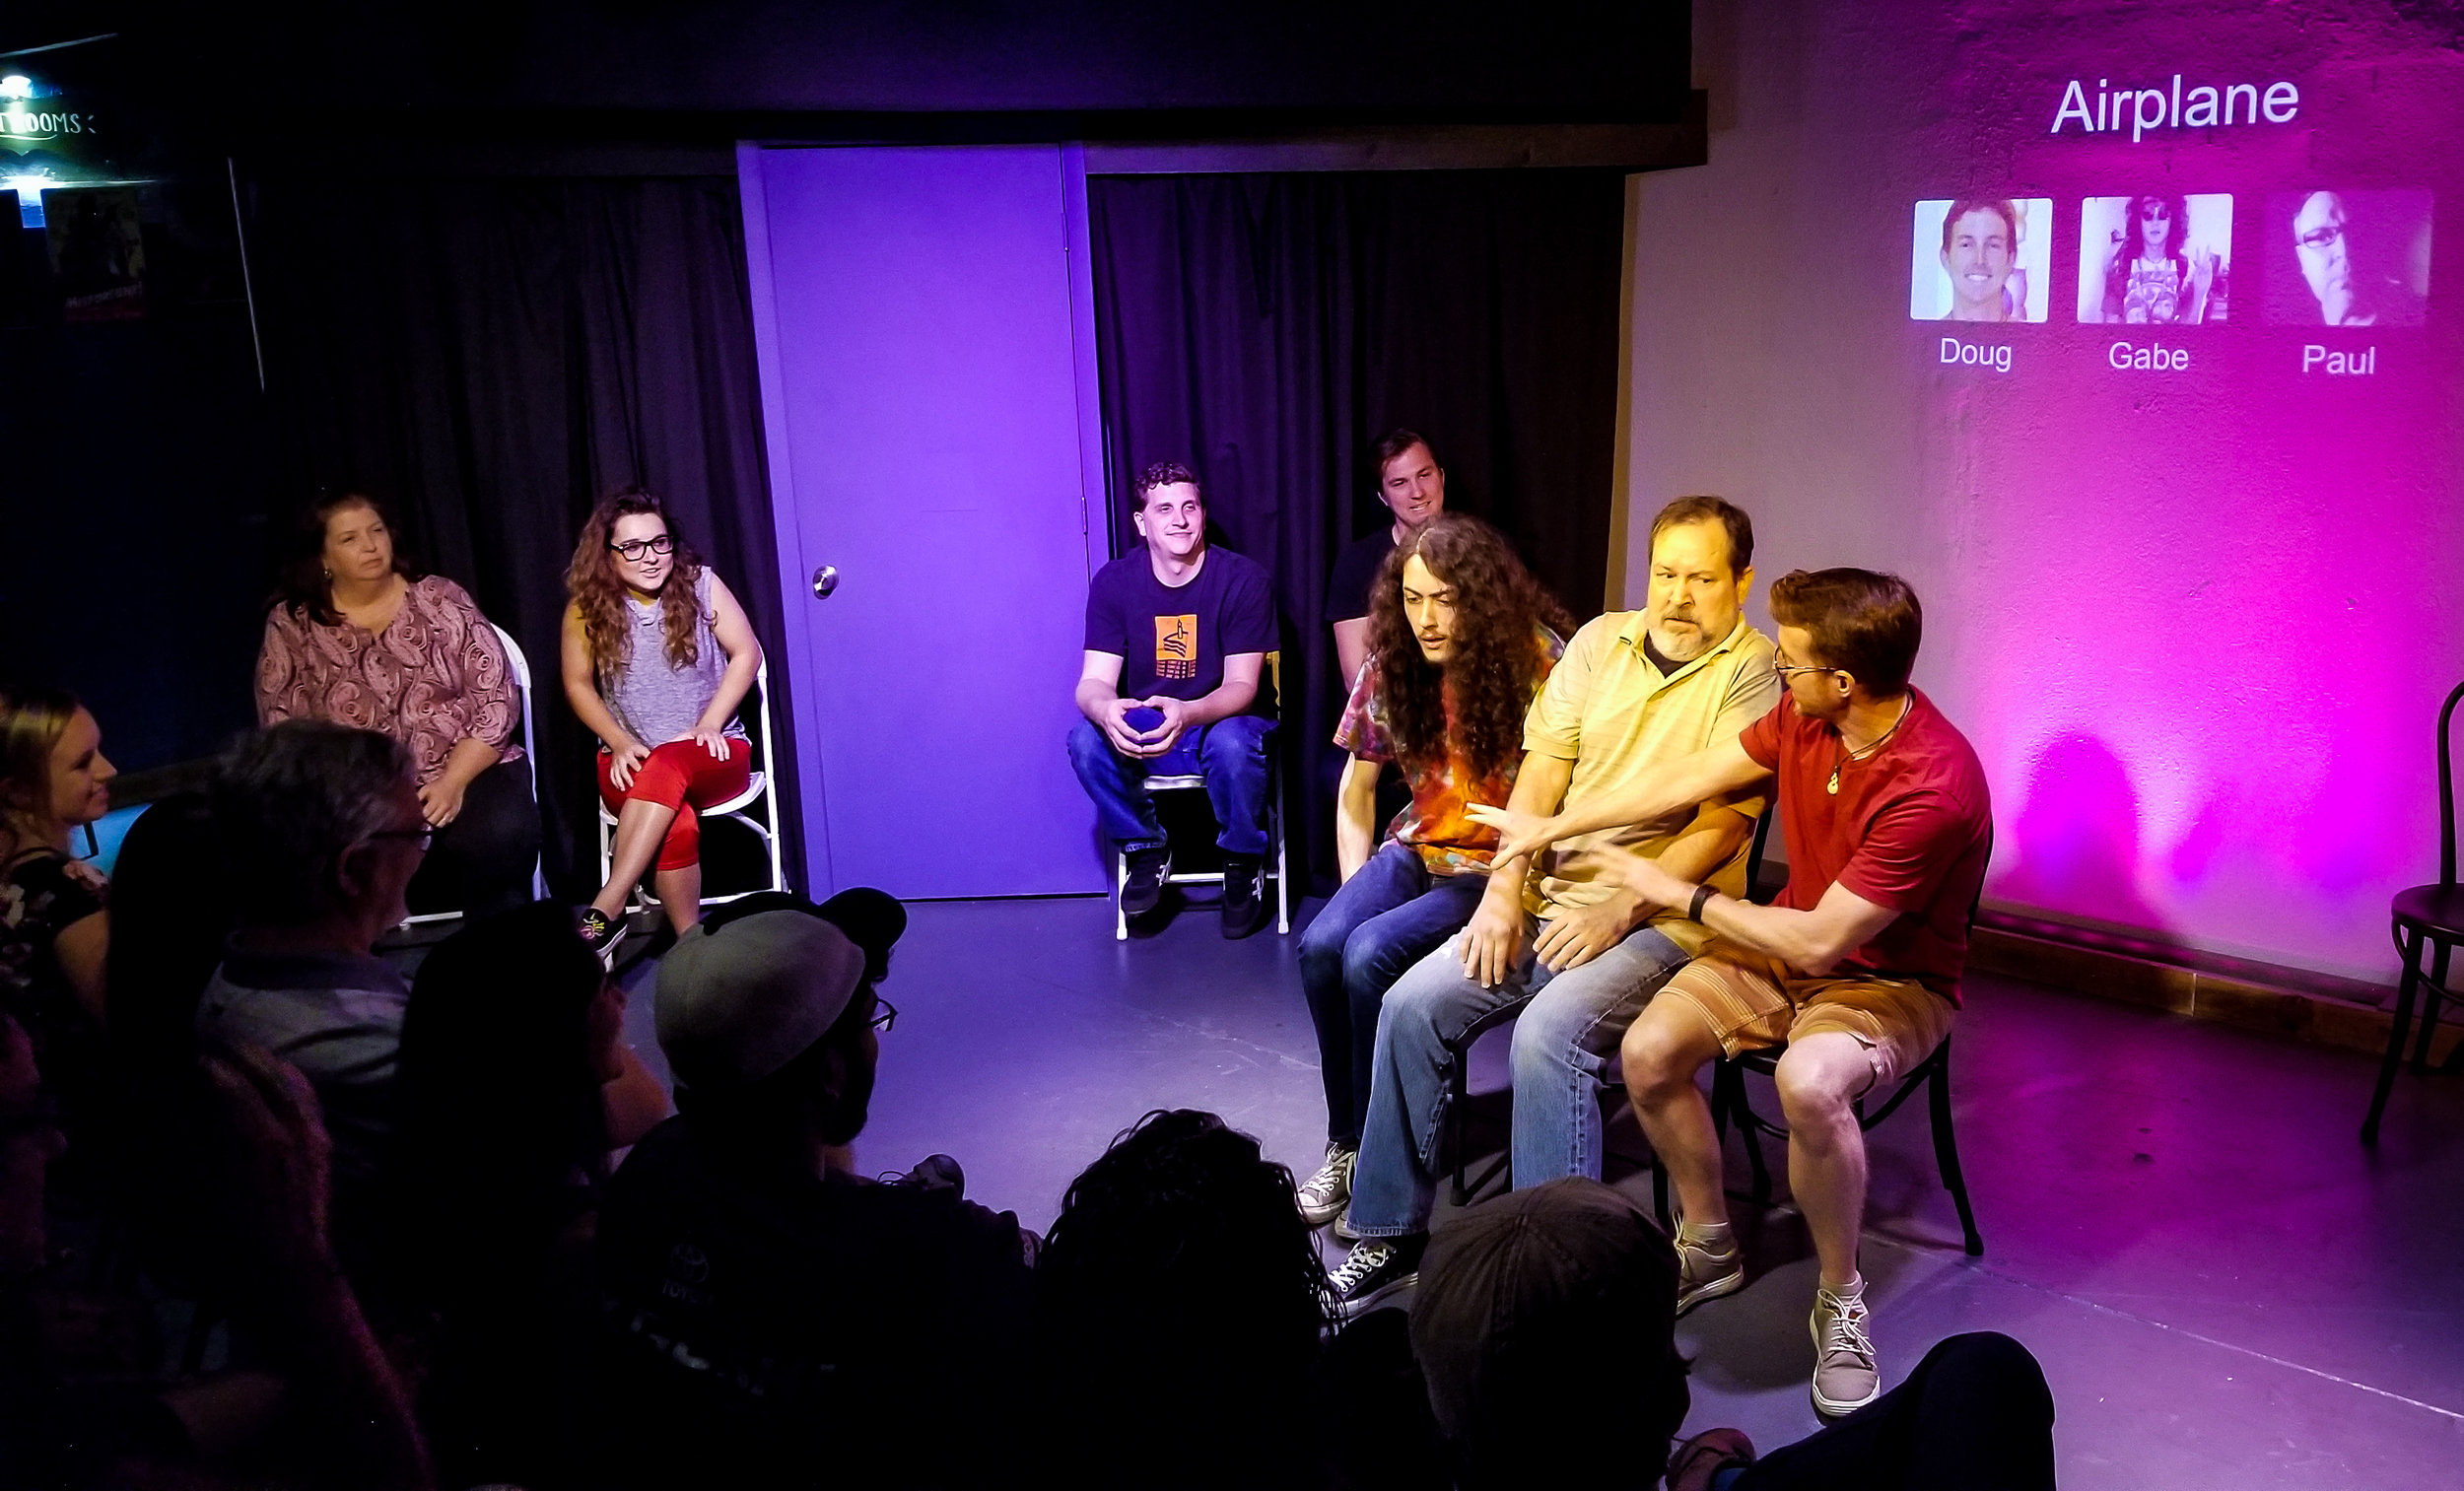 Doug playing Airplane with Gabe and Paul in Whose Line St Pete.